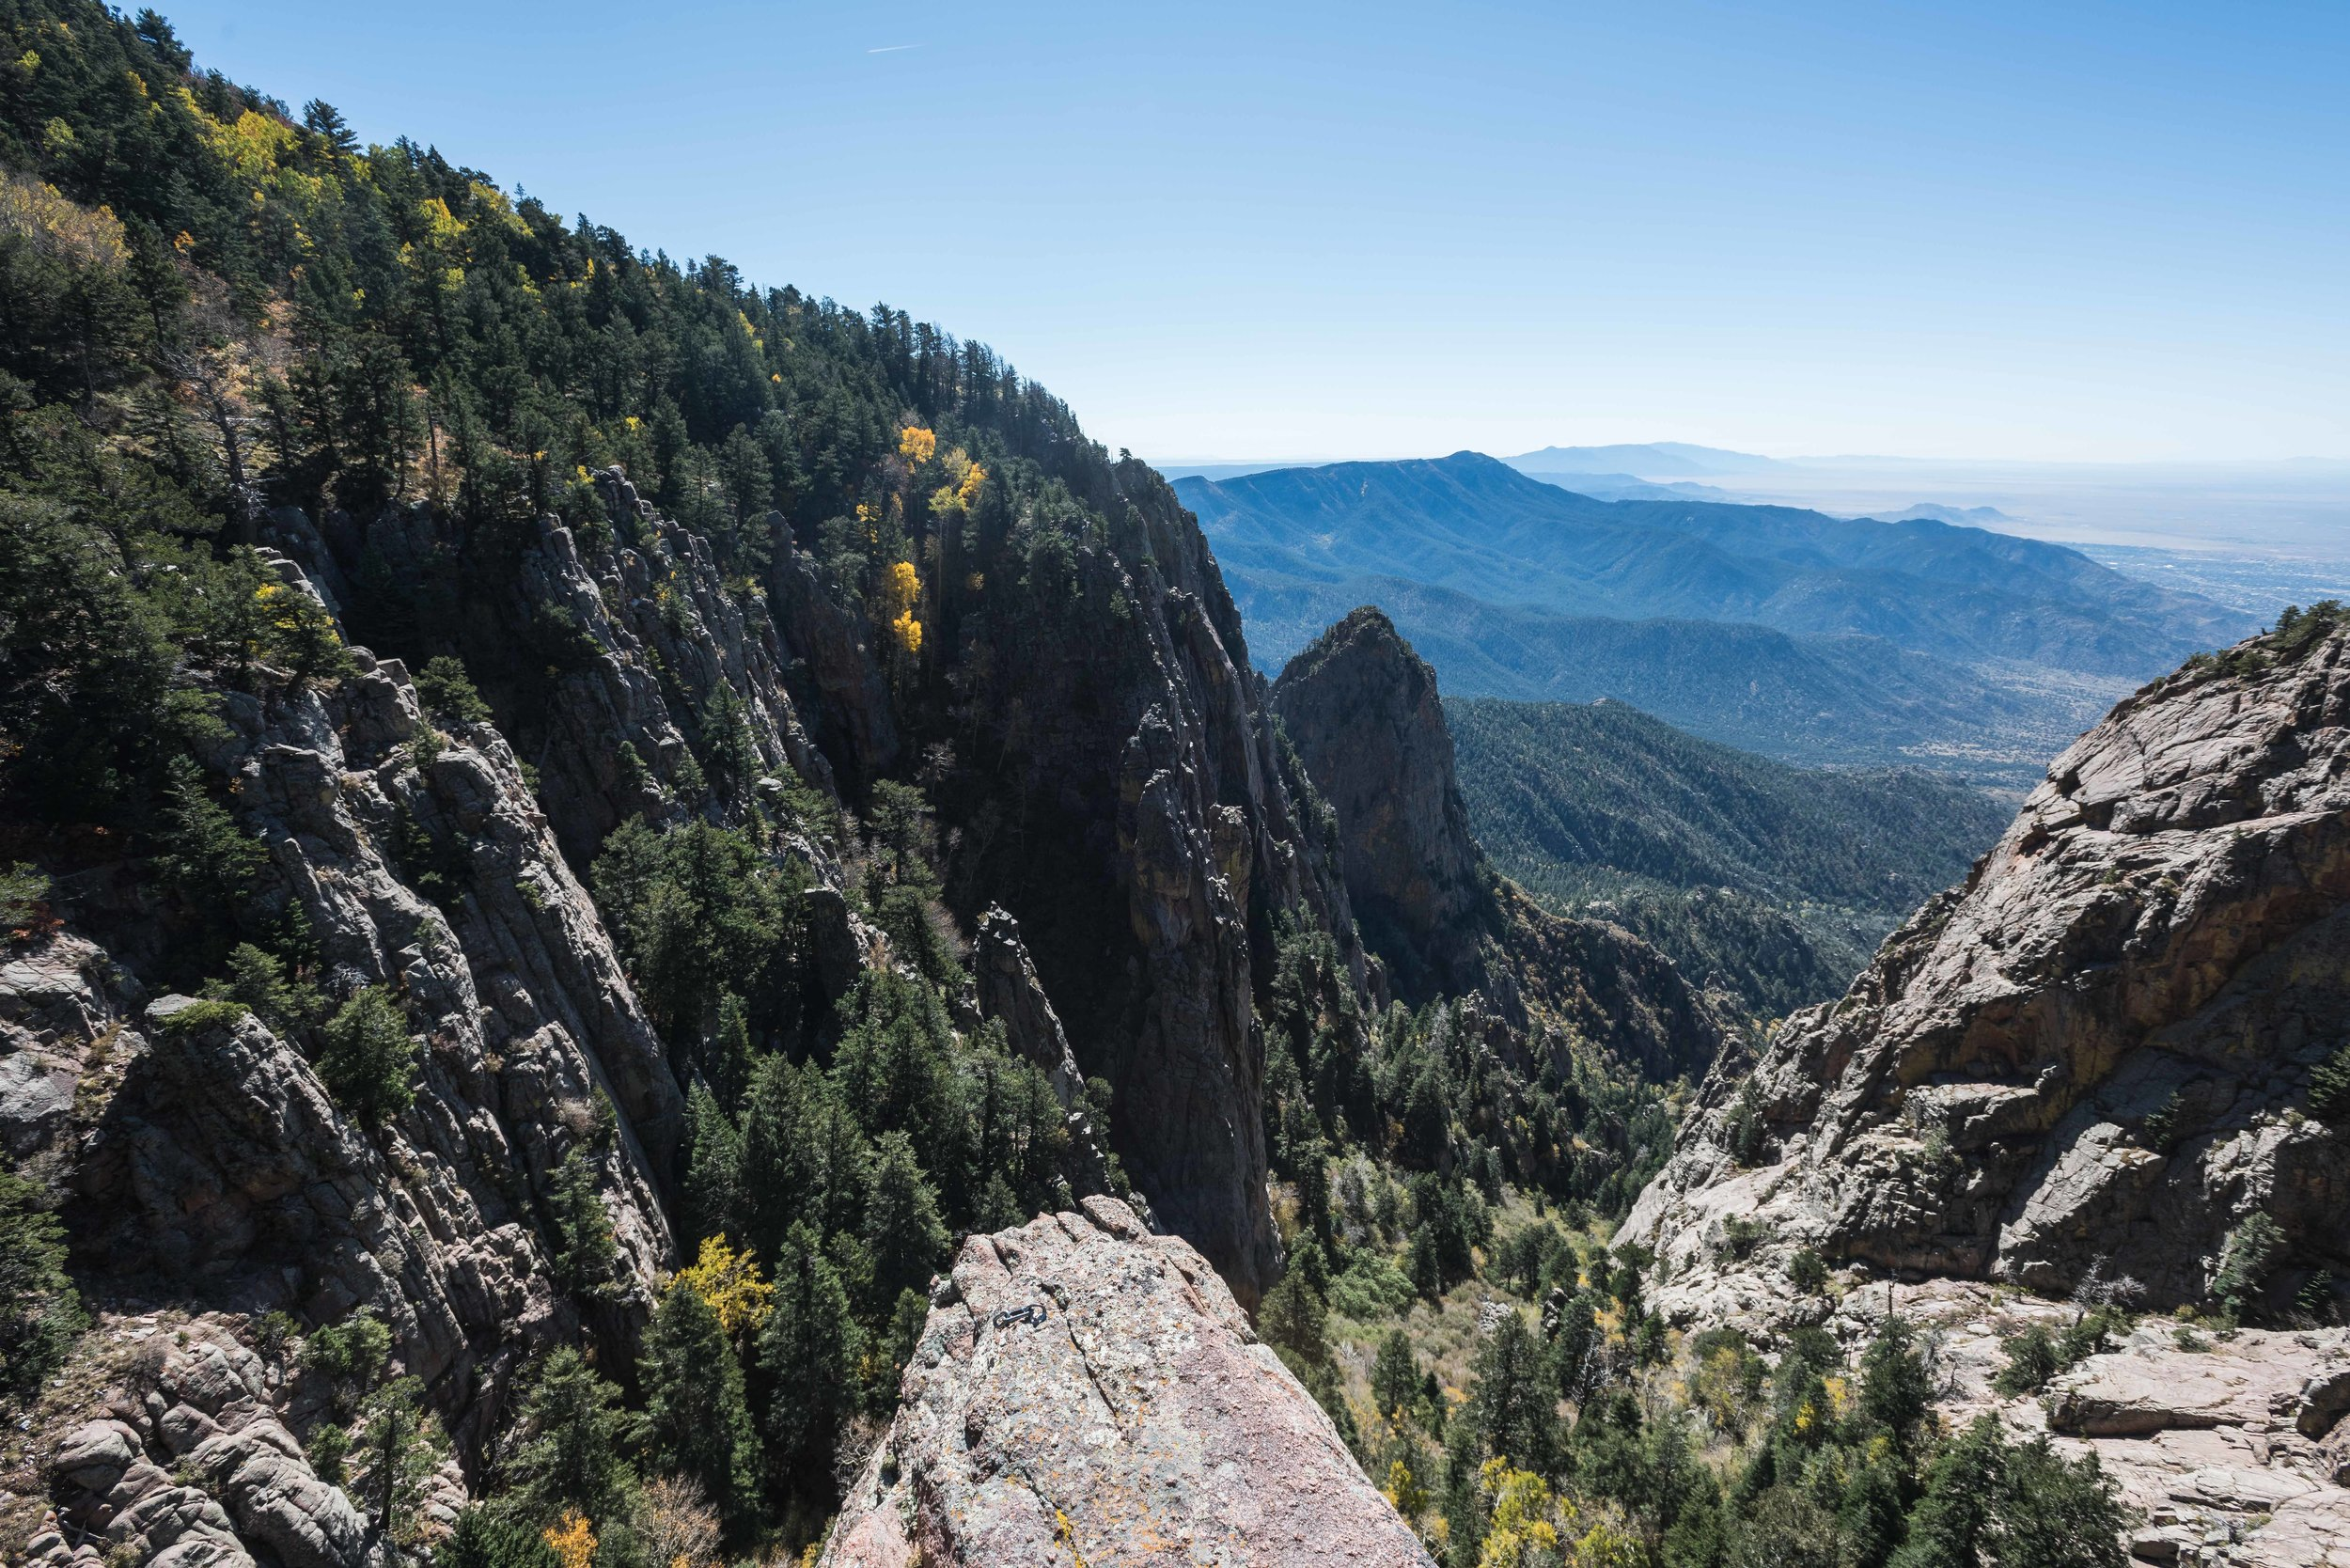 The view from a spot at the top of the La Luz trail with access to multiple potential lines